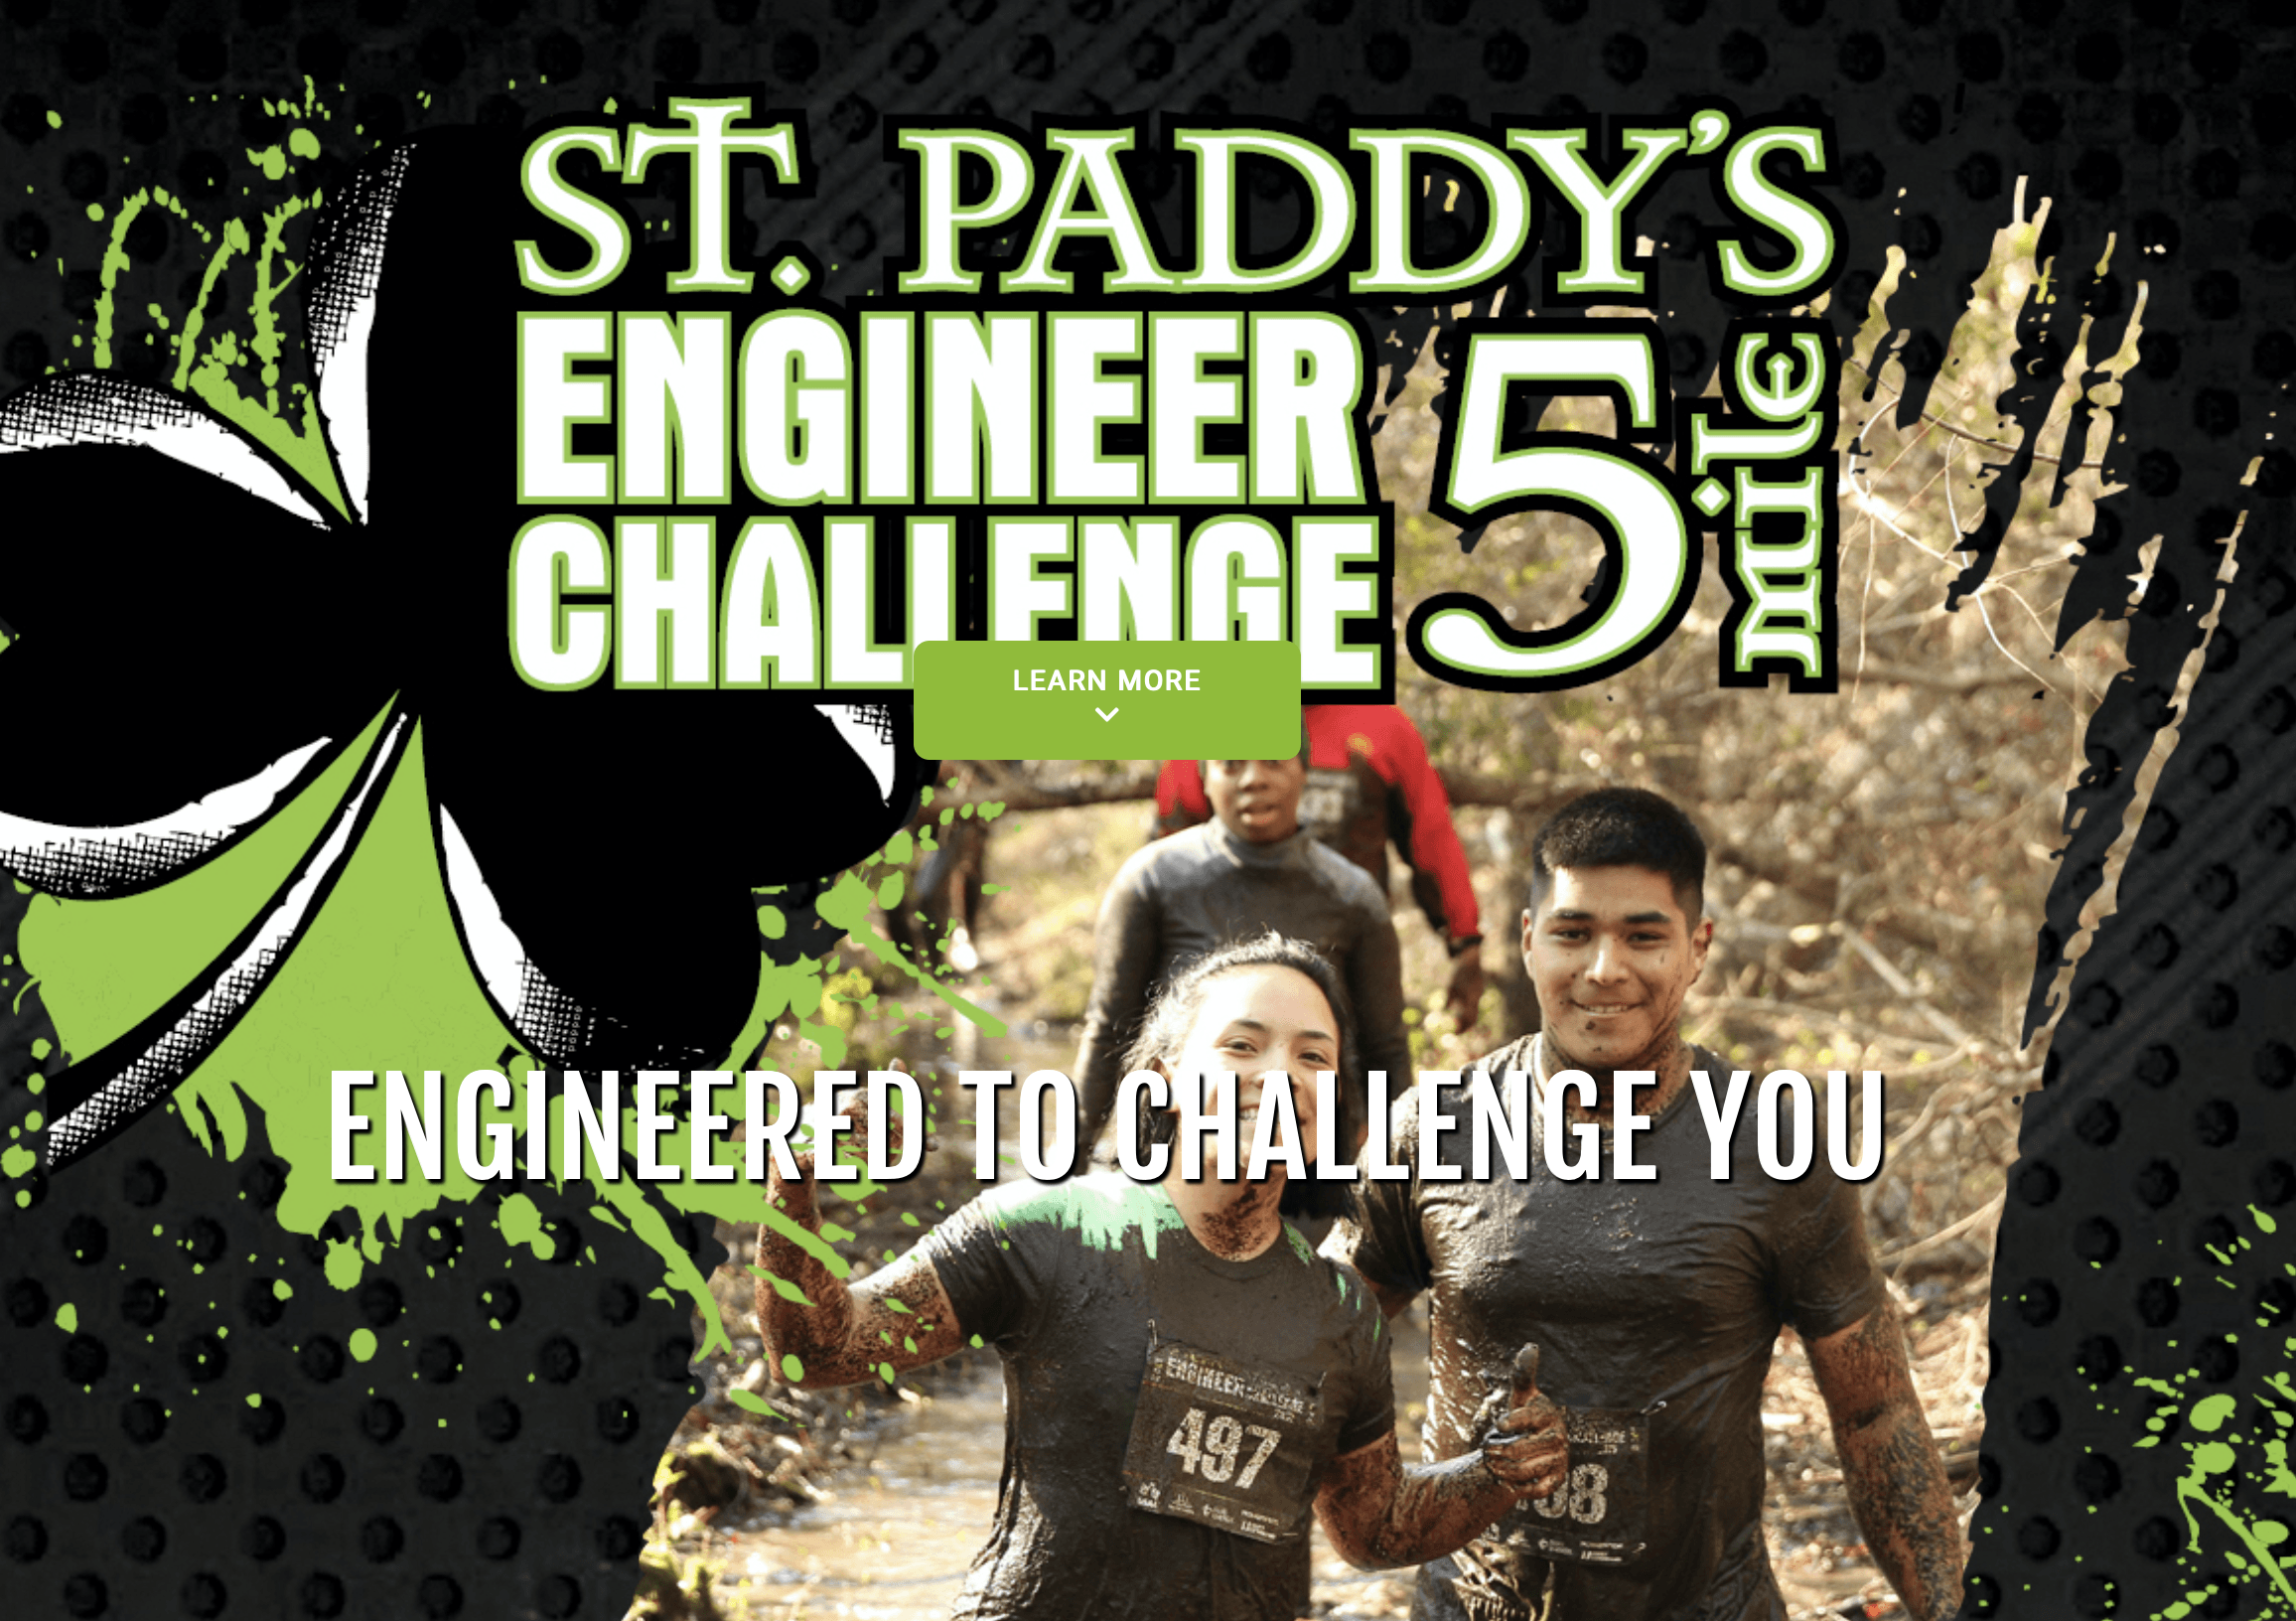 St Paddy's Engineer Challenge